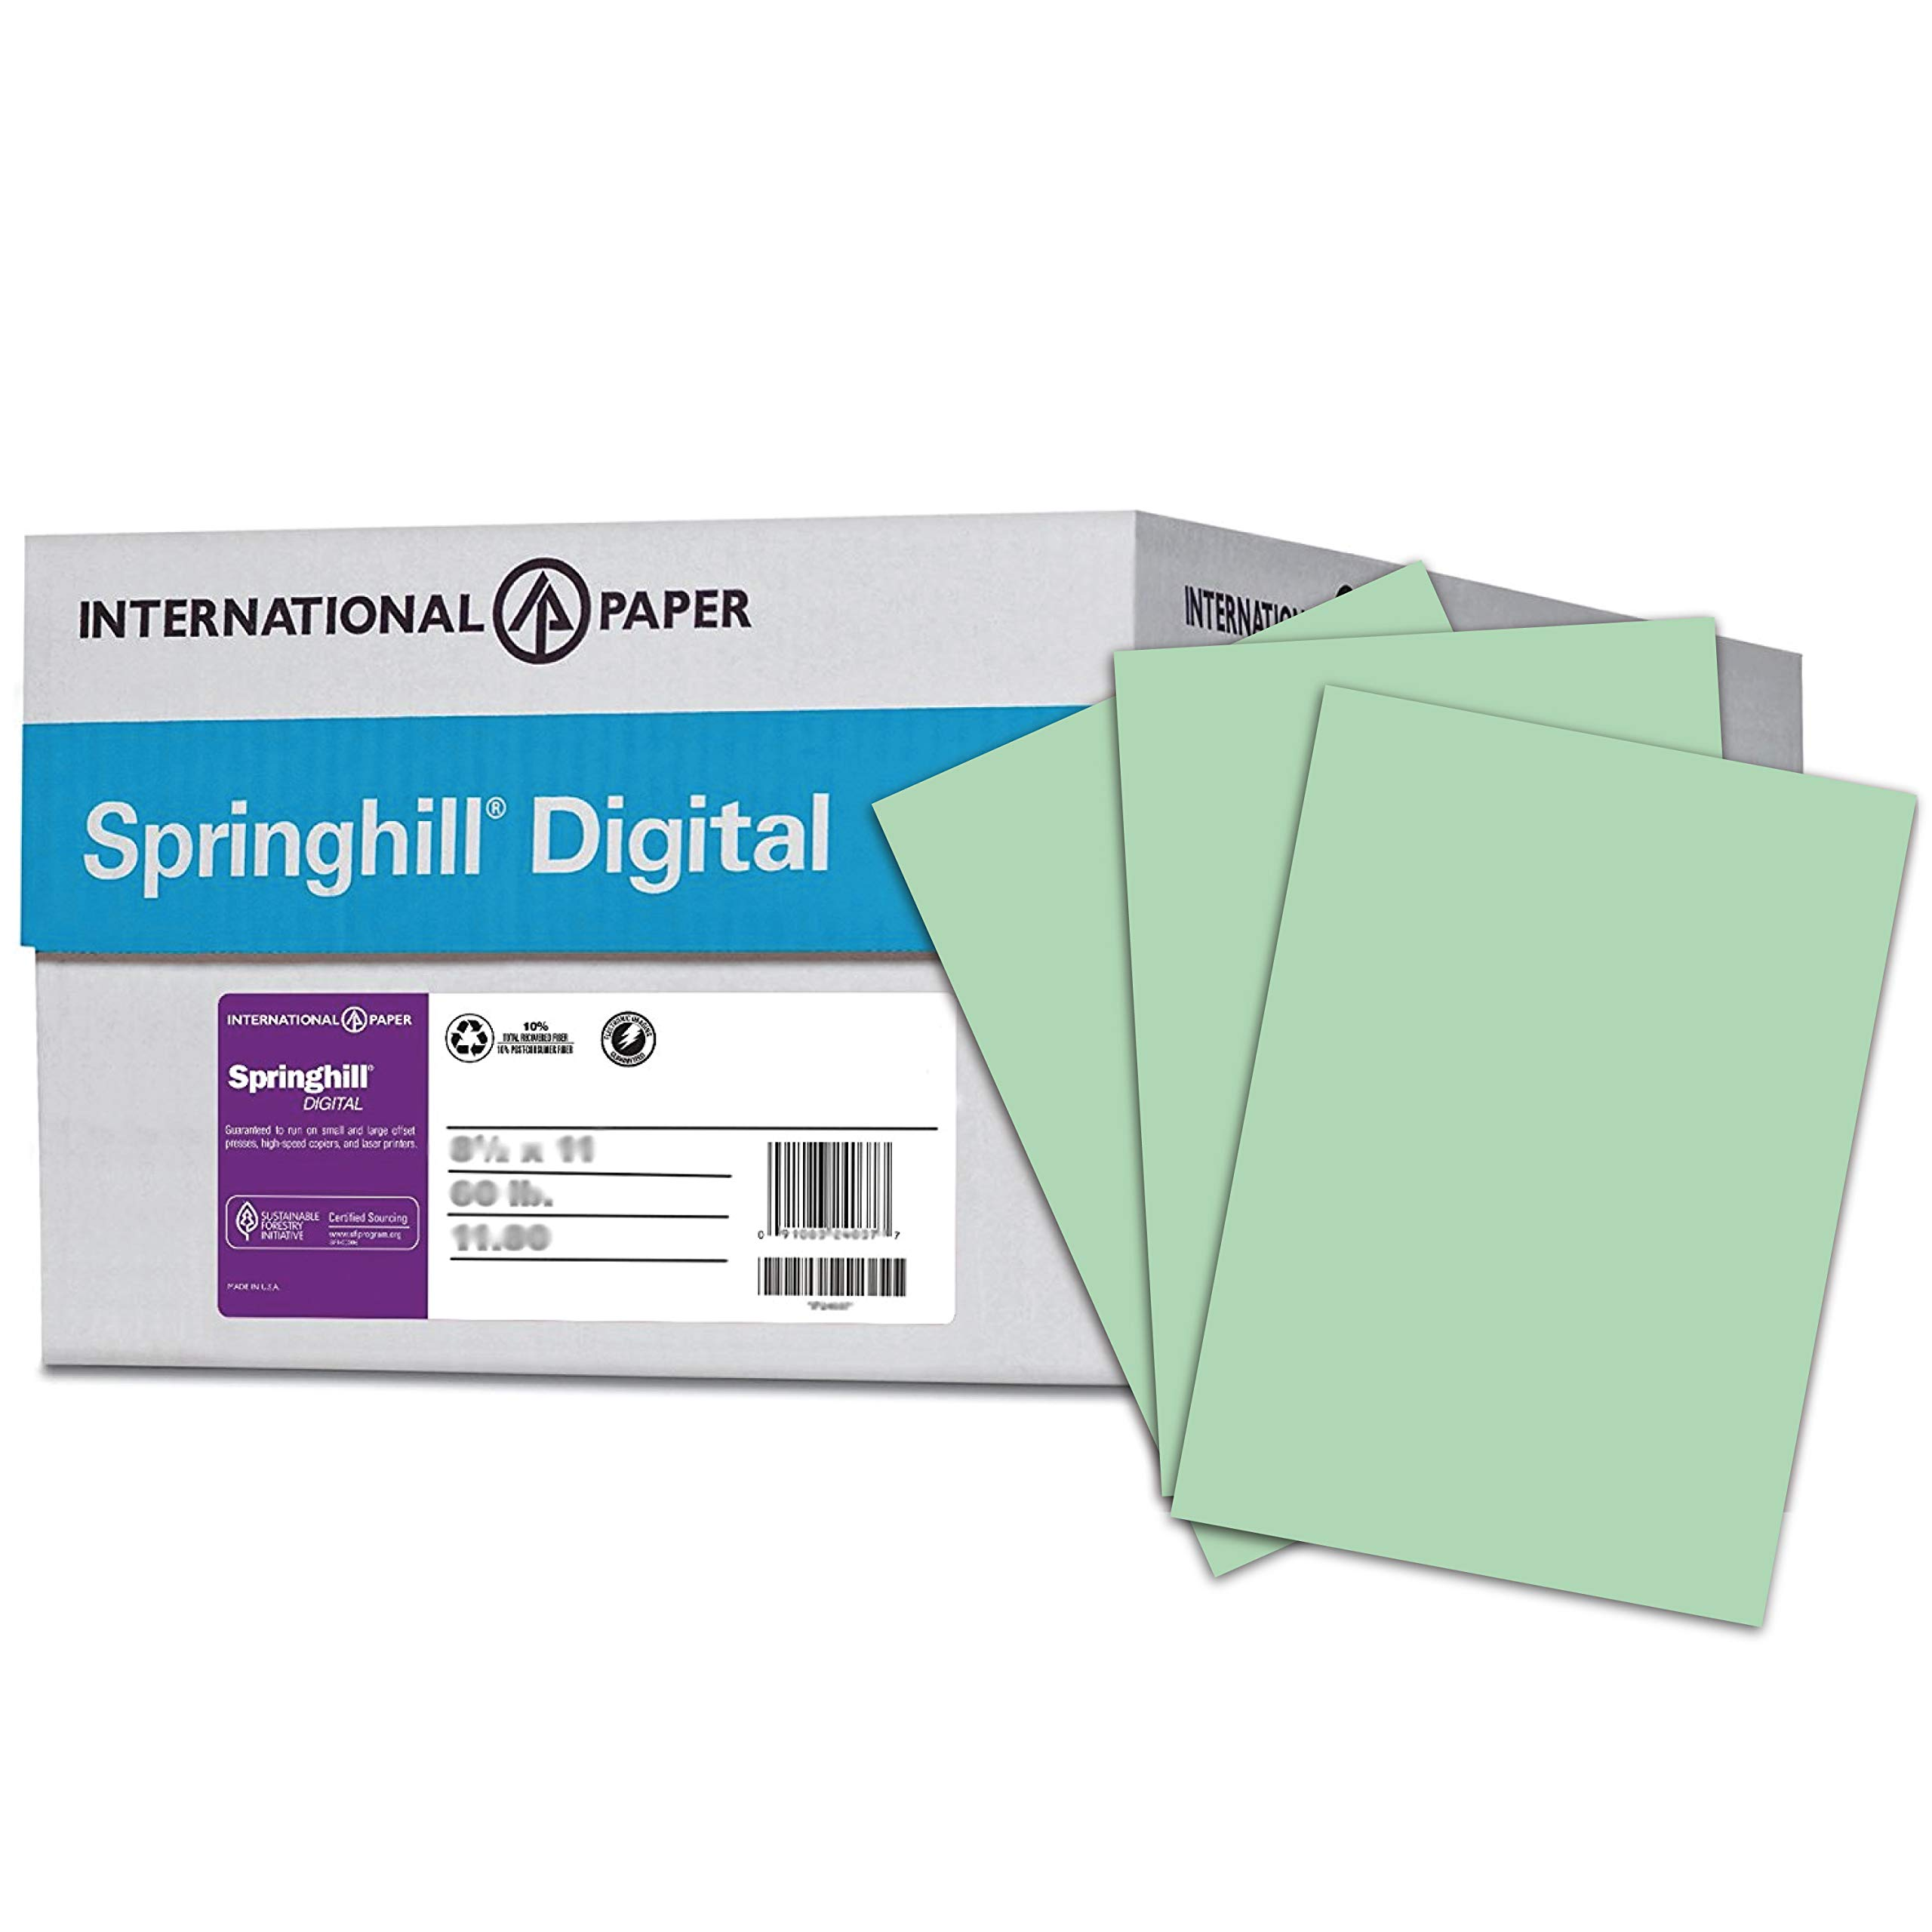 Springhill Colored Paper, Cardstock Paper, Green Paper, 65lb Paper, 176 gsm, Letter Size, 8.5 x 11 Paper, 10 Ream Case / 2,500 Sheets, Opaque Card Stock, Thick Paper (014050C) by Spring Hill